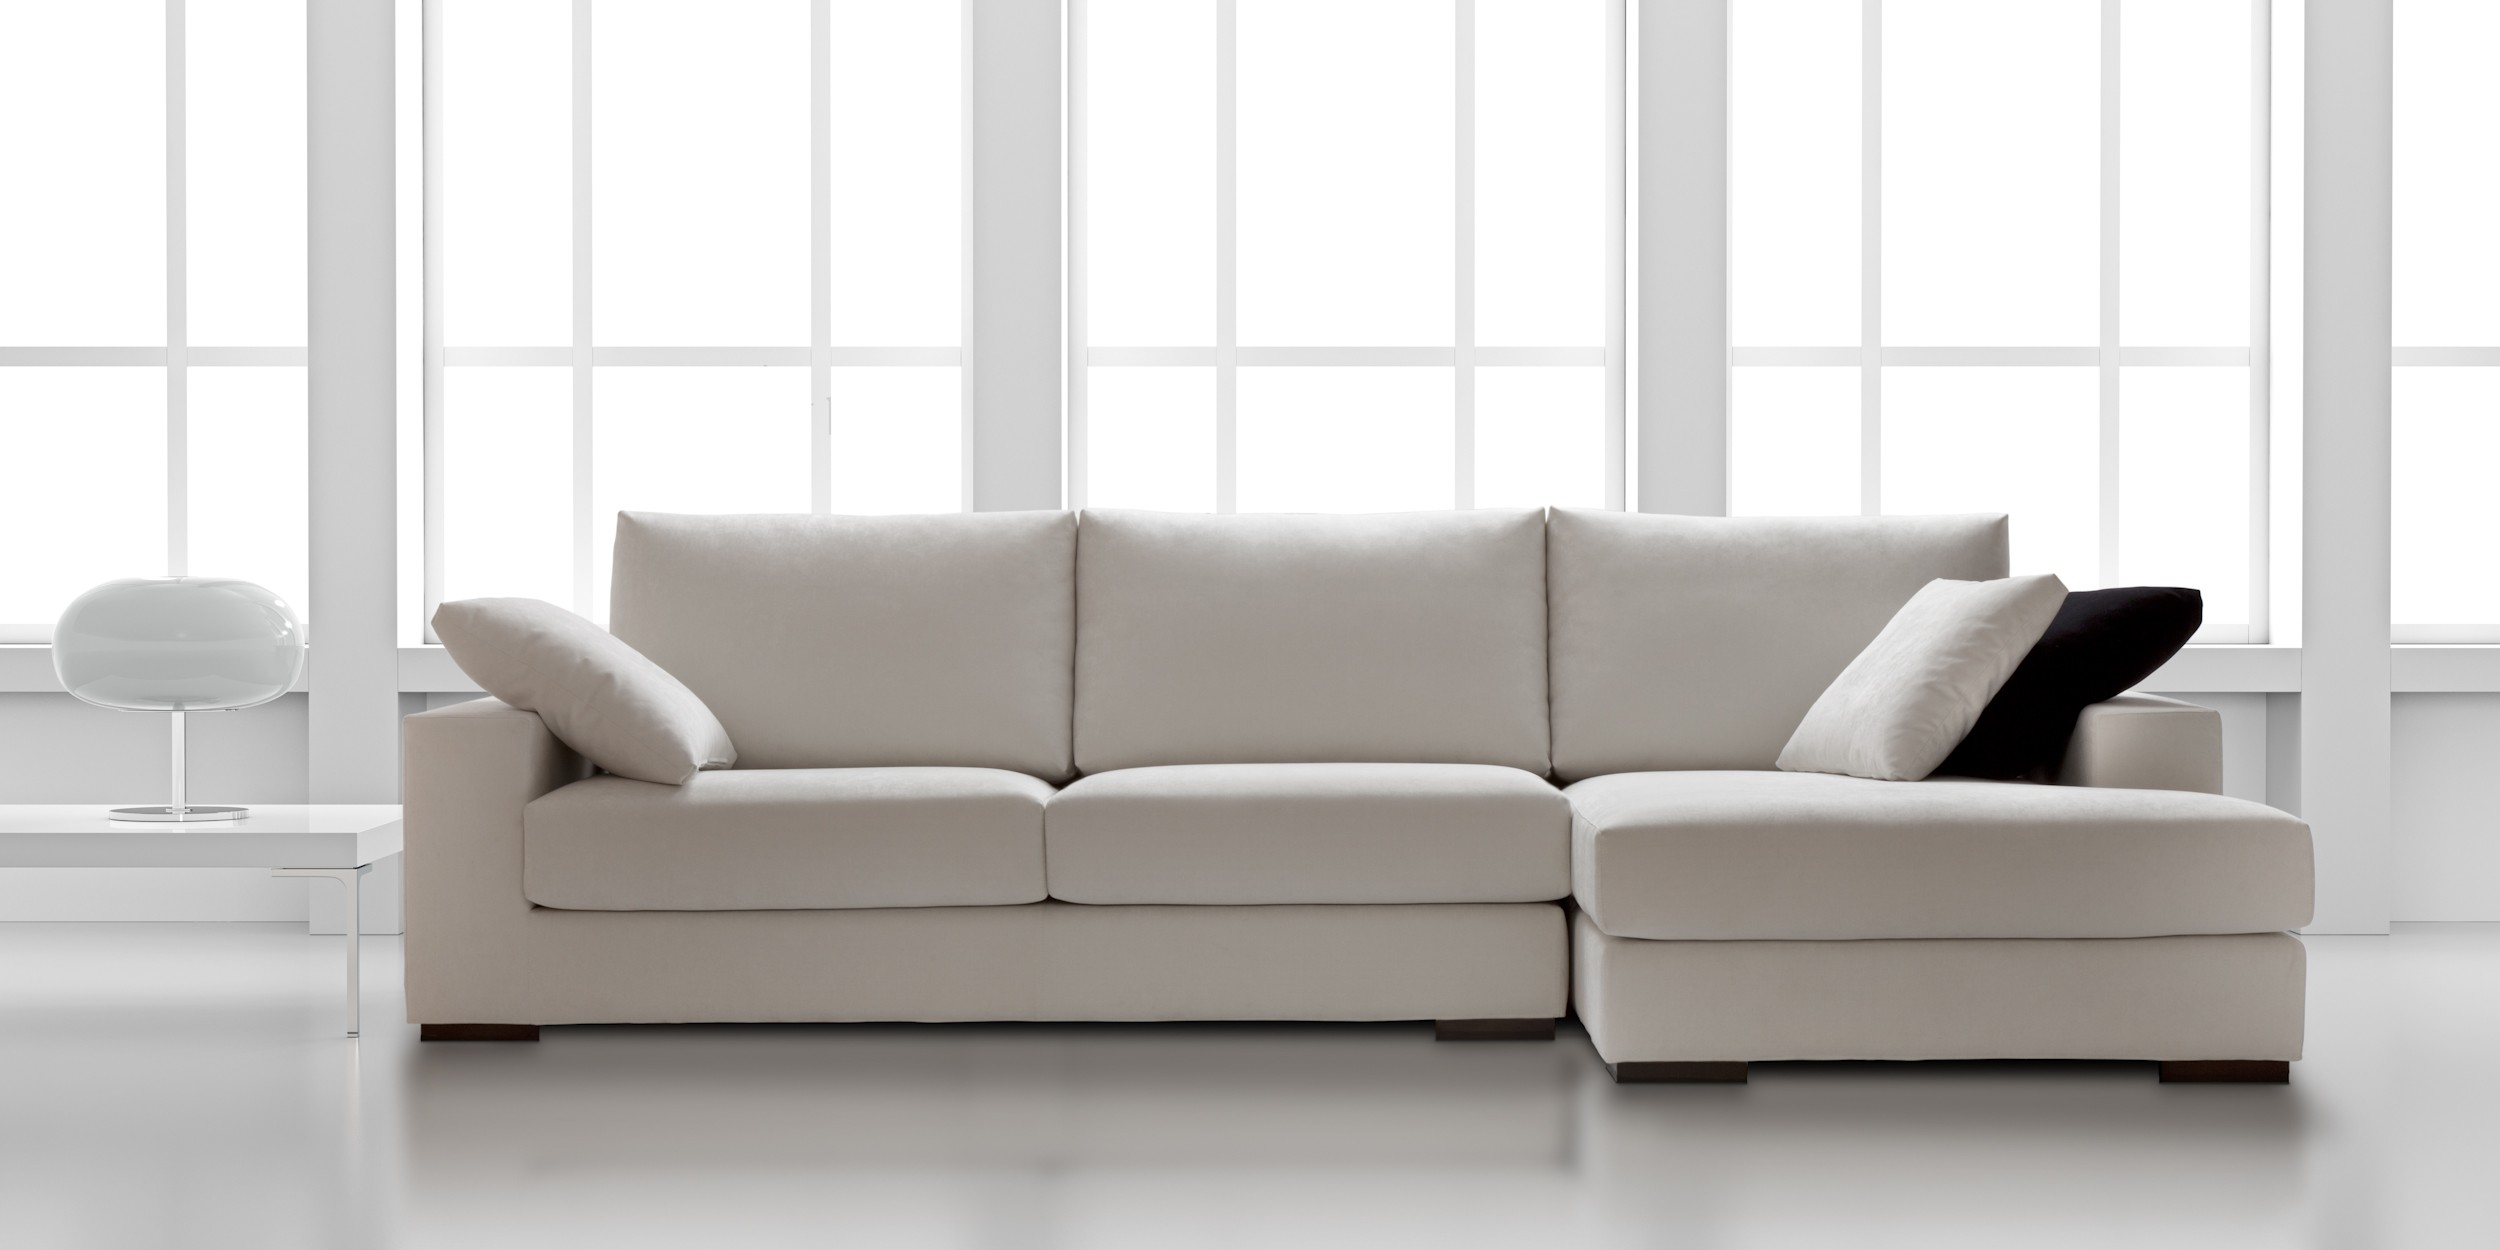 Sofas madrid hereo sofa for Fabrica sofa cama 1 plaza